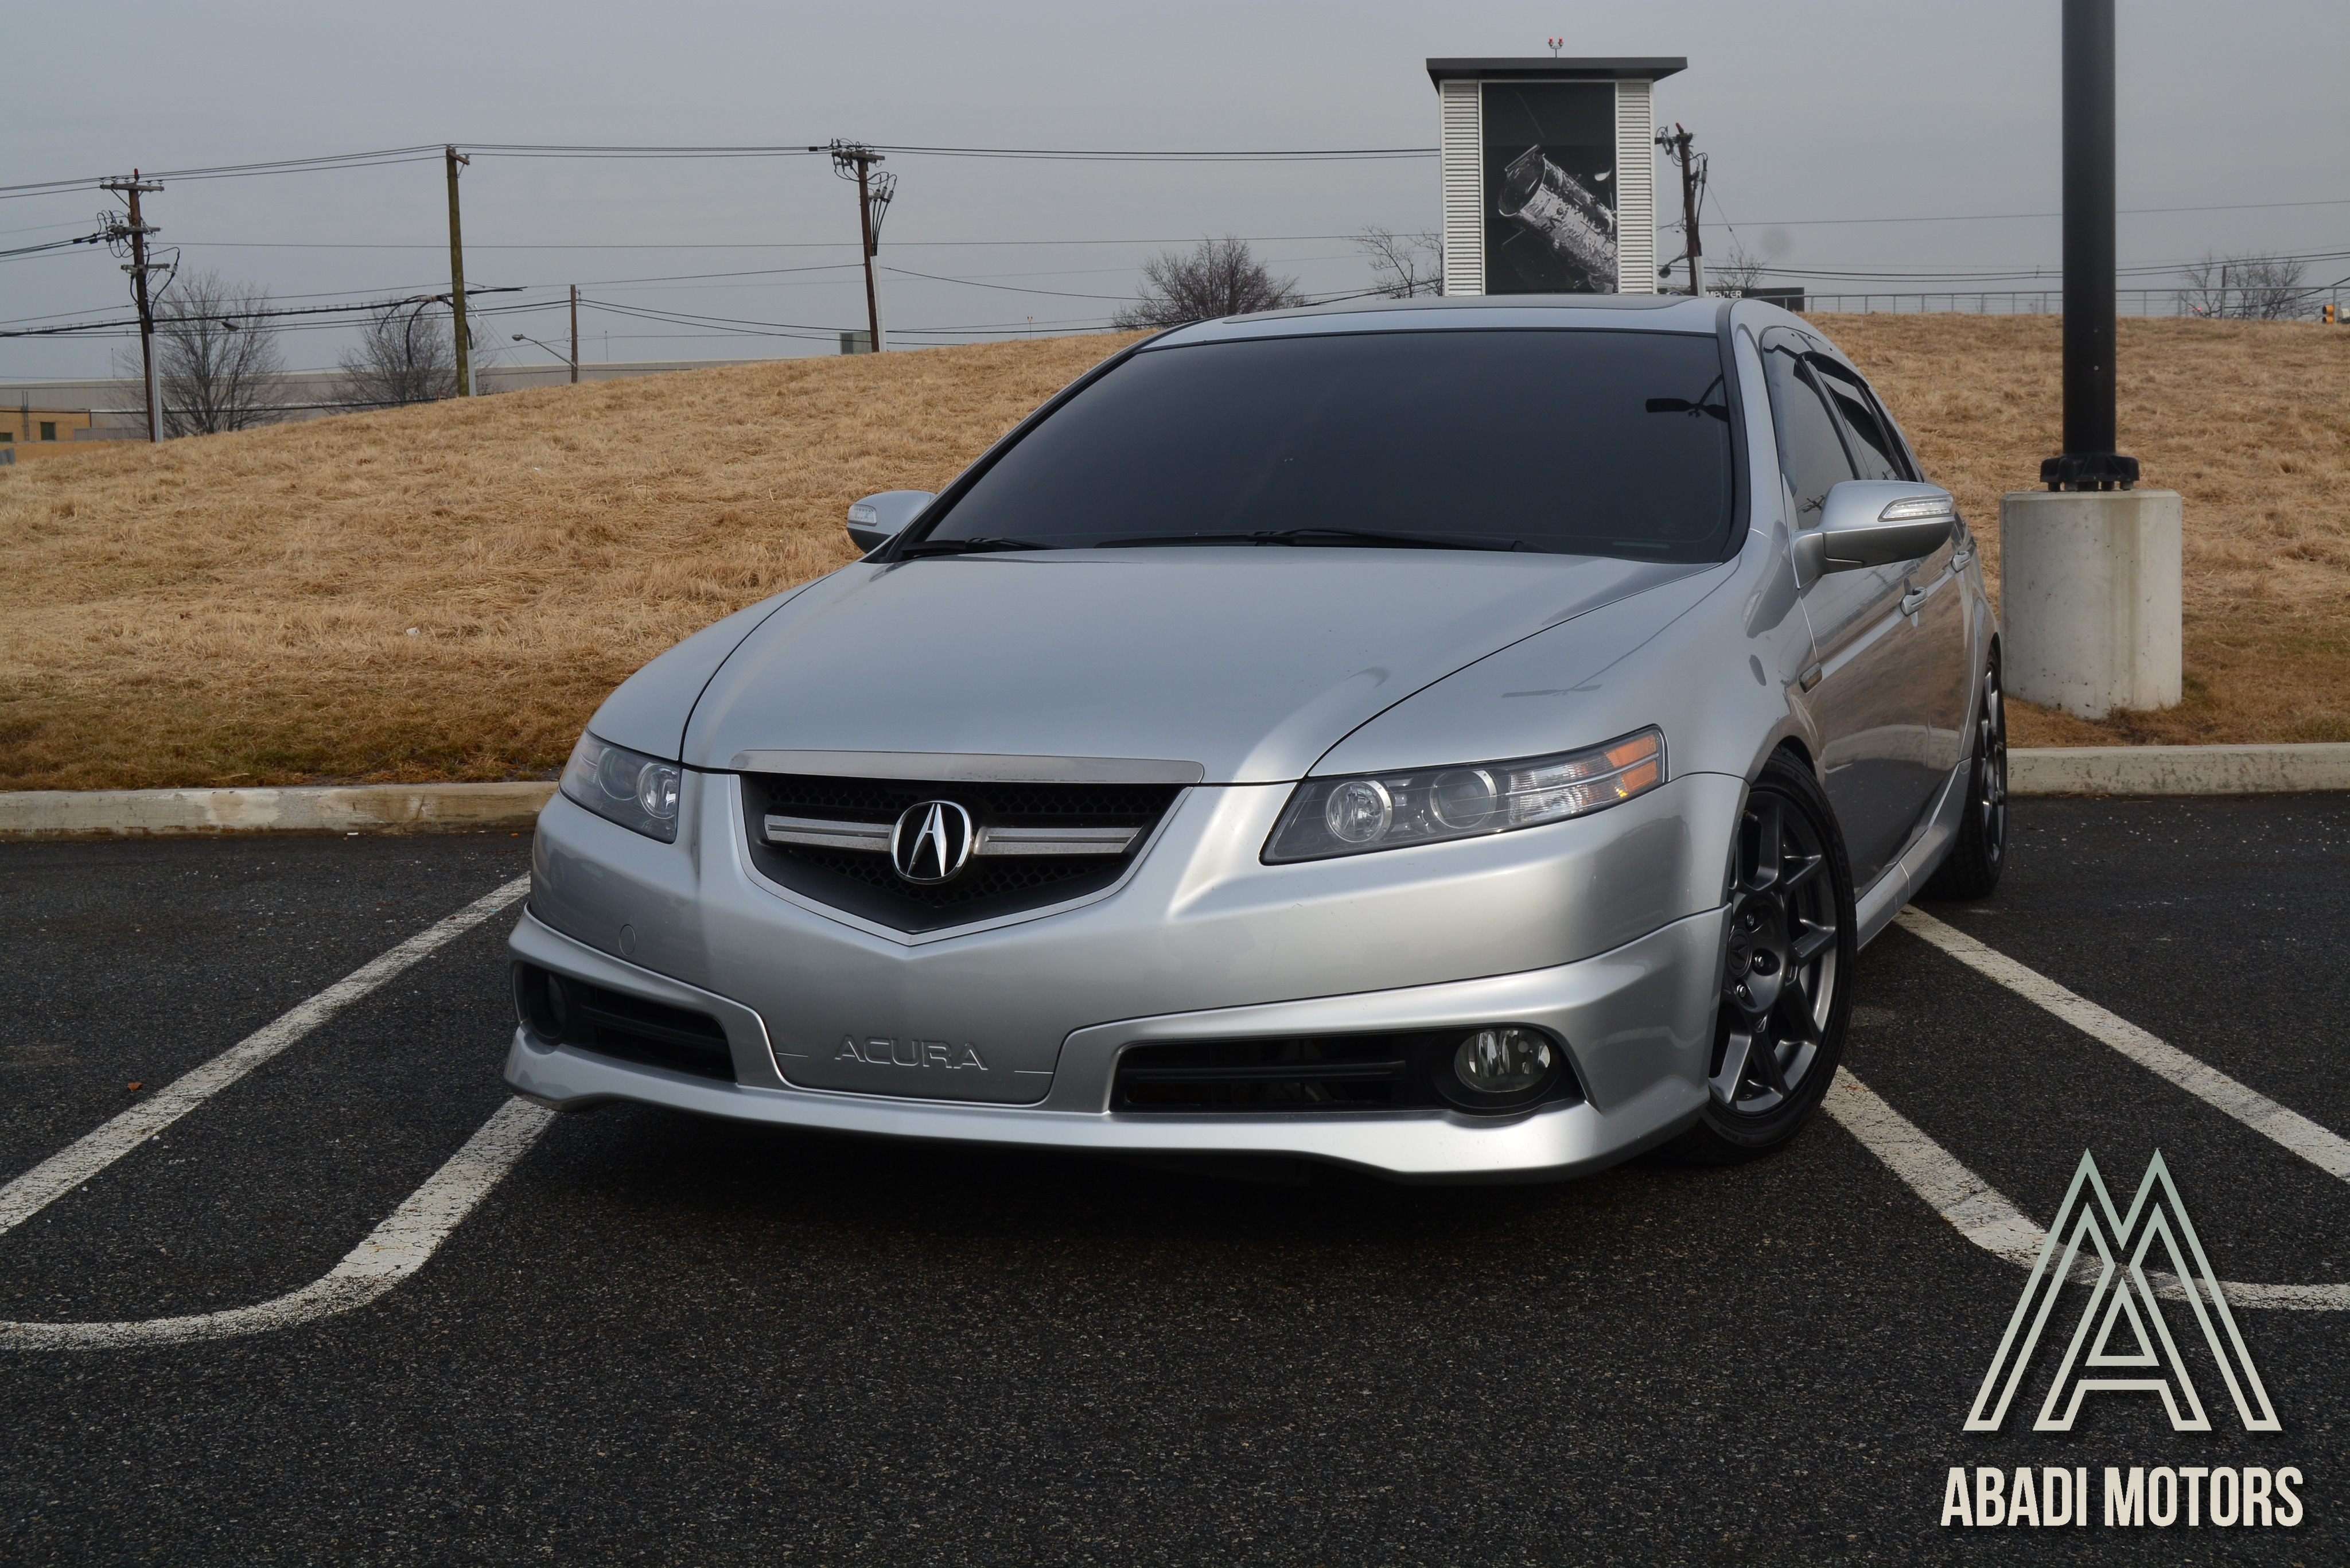 amber rgb profile tl home prism changing halos color led headlights fitted headlight acura